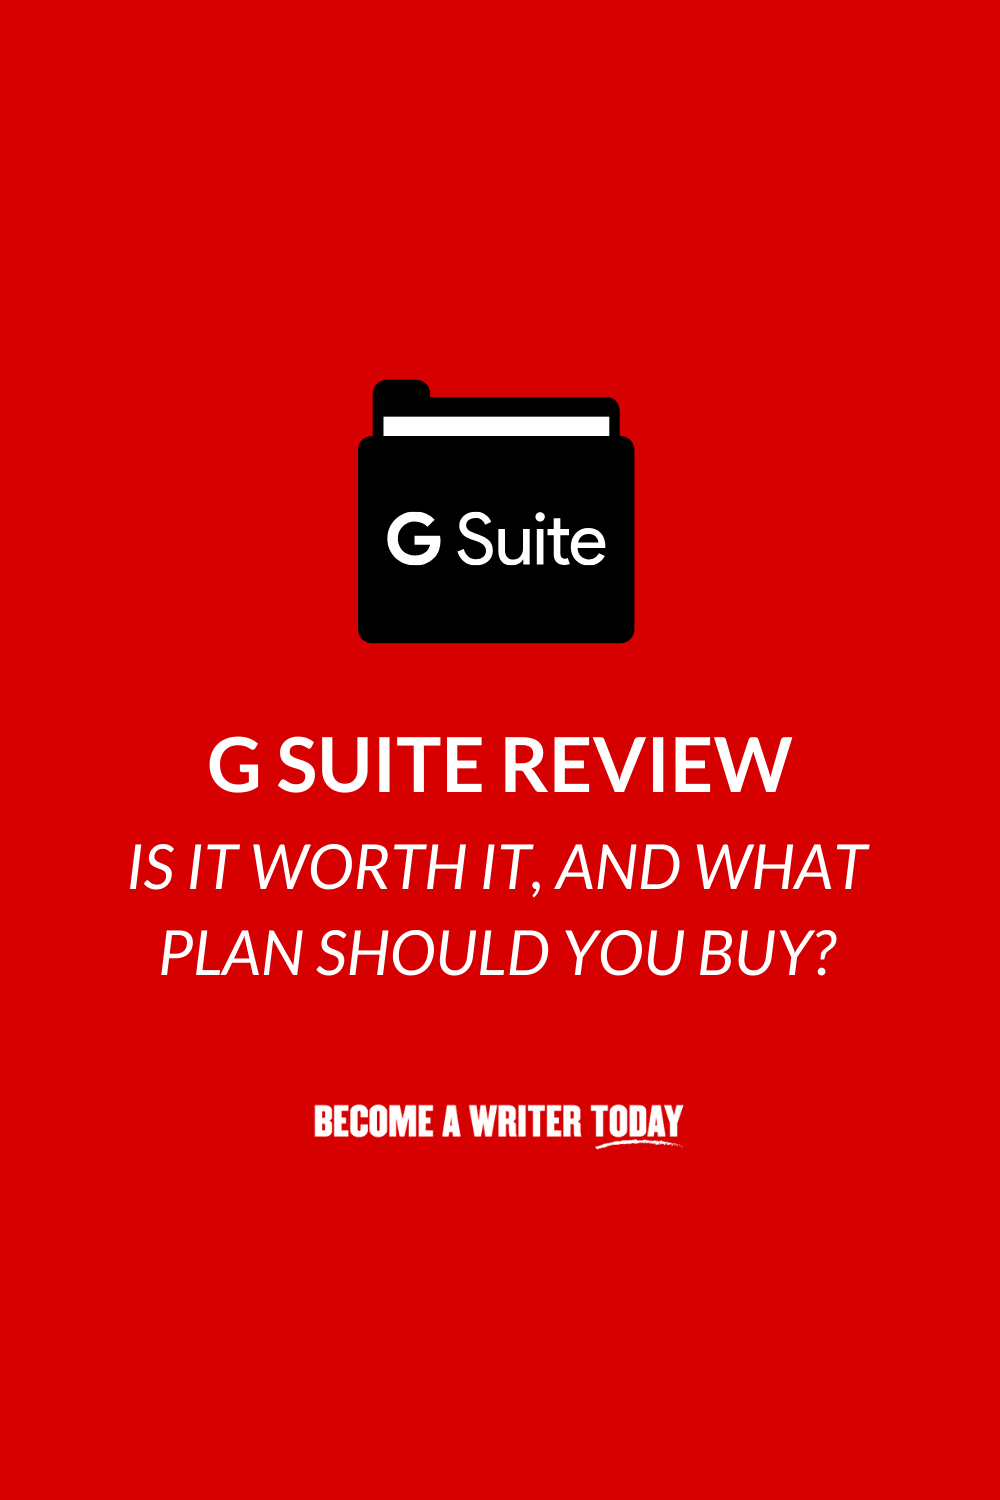 G Suite Review 2020: Is It Worth It, And What Plan Should You Buy?